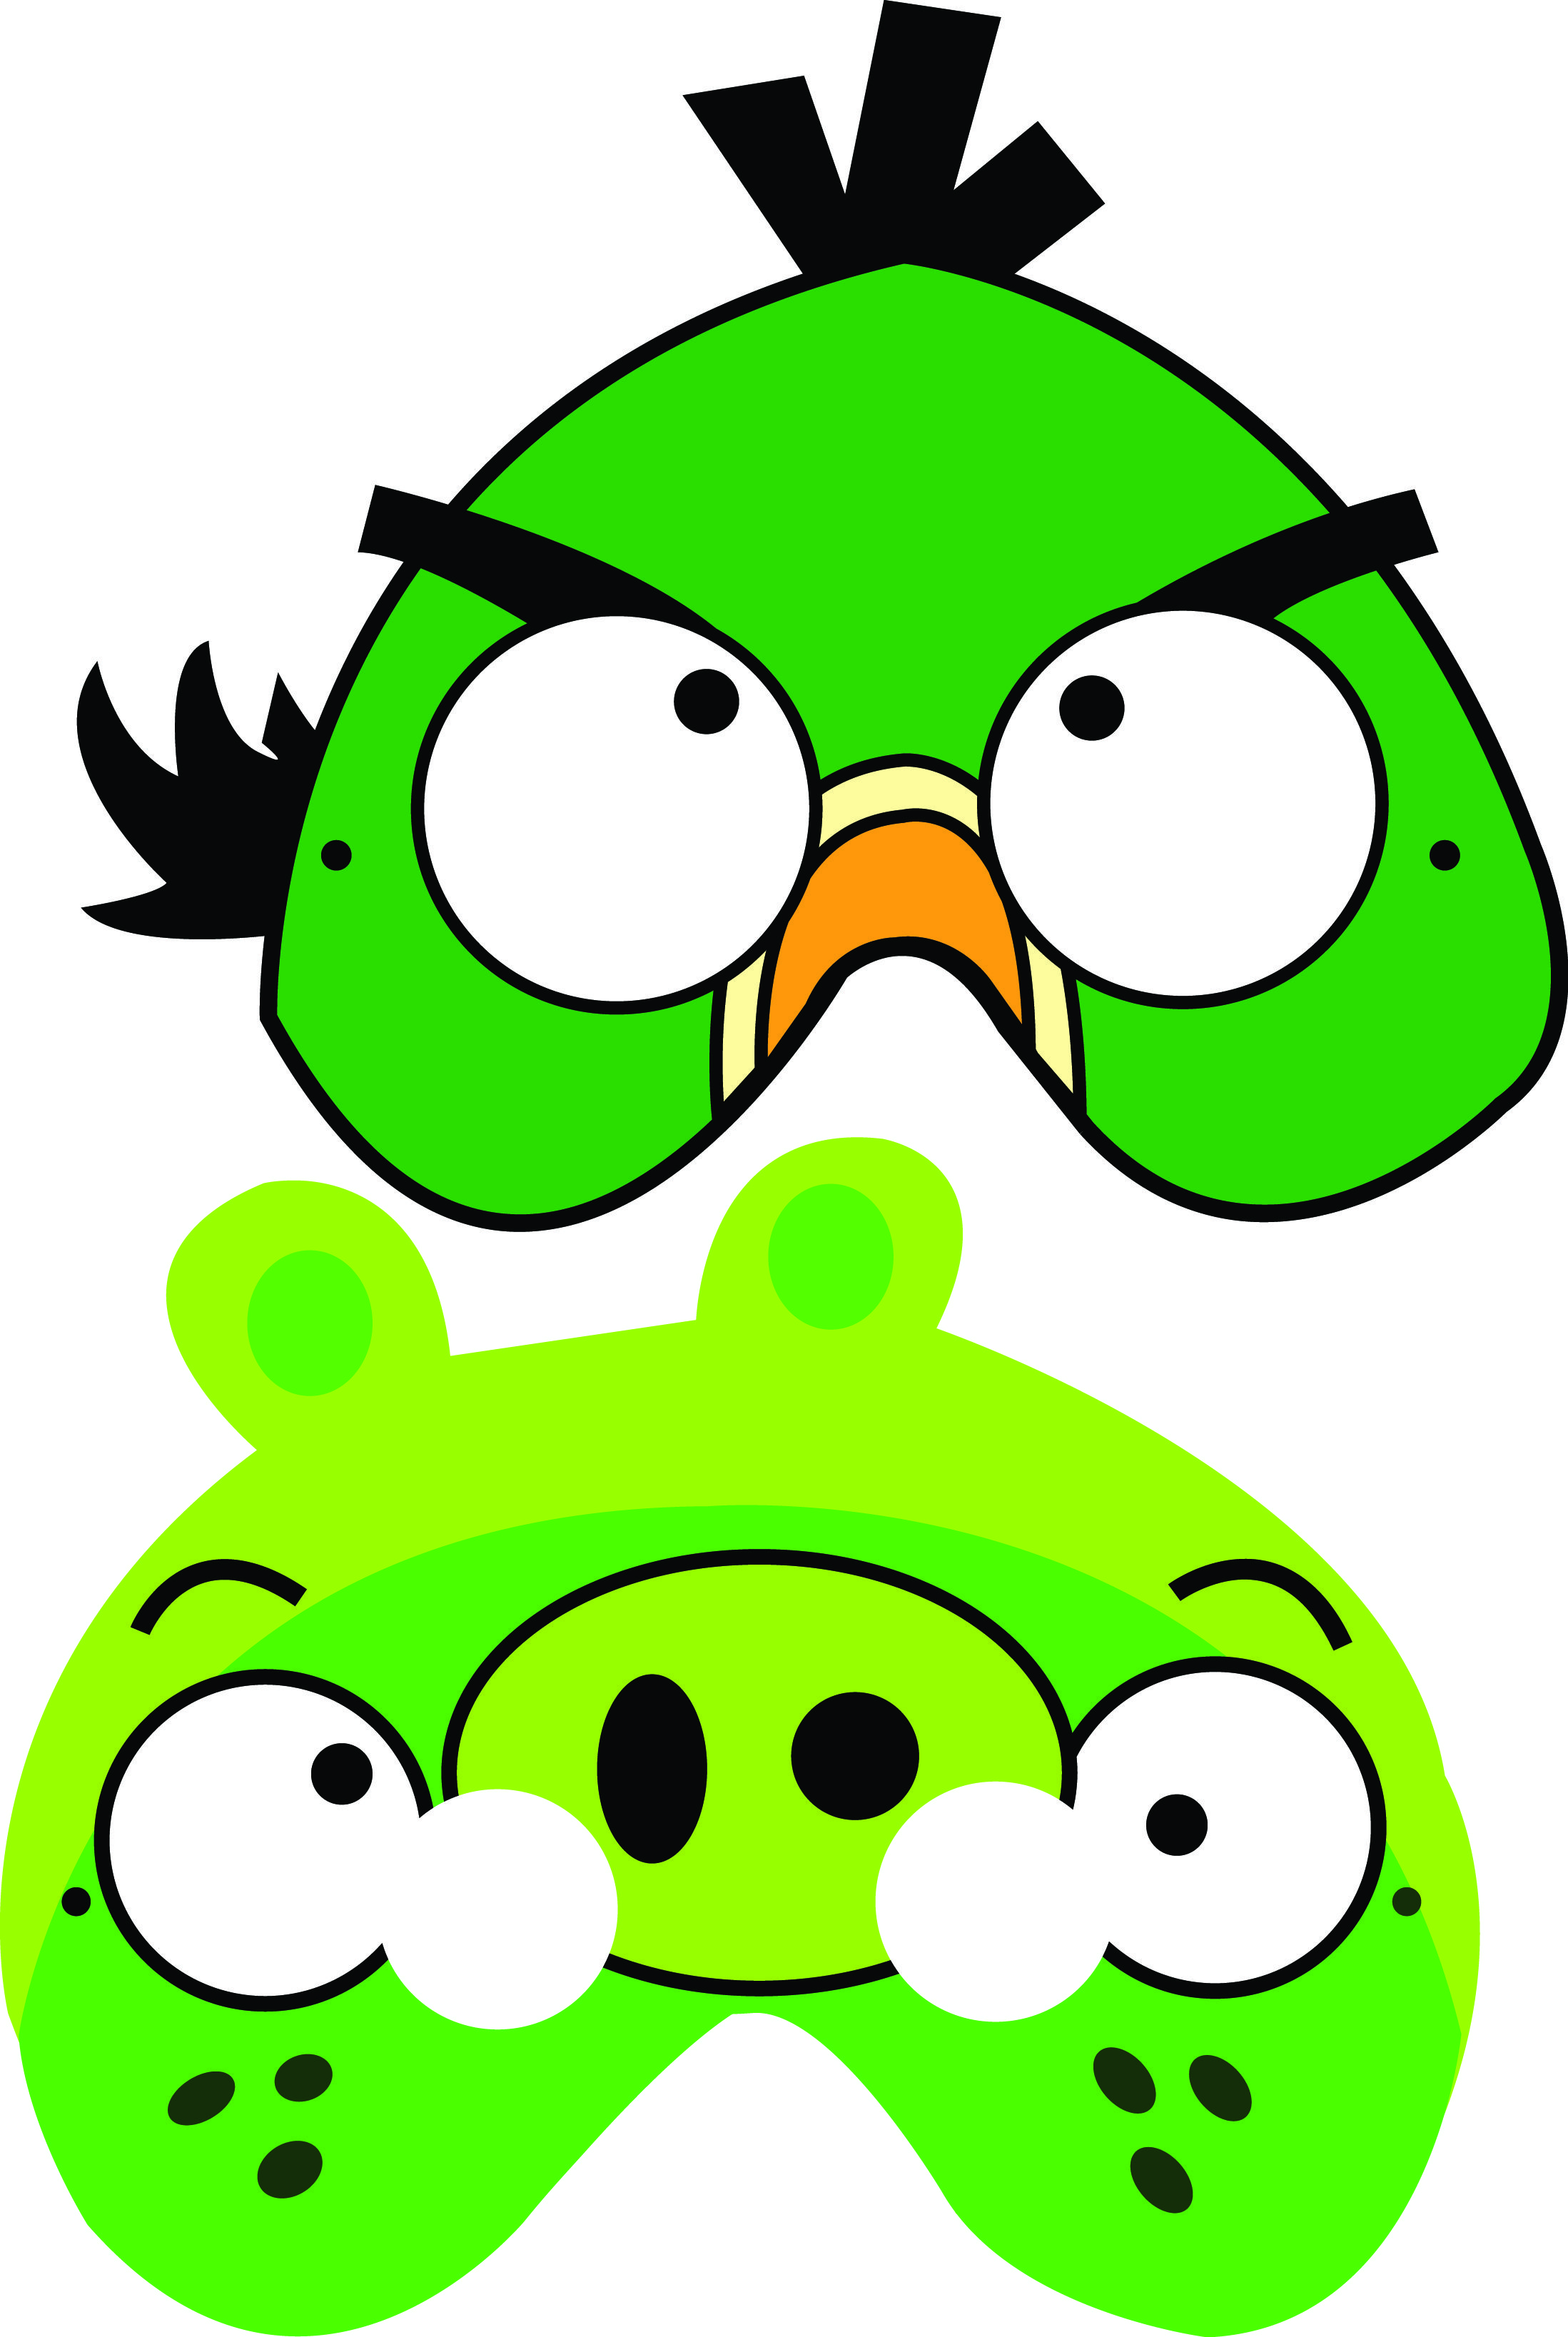 Free Angry Birds Printable Masks